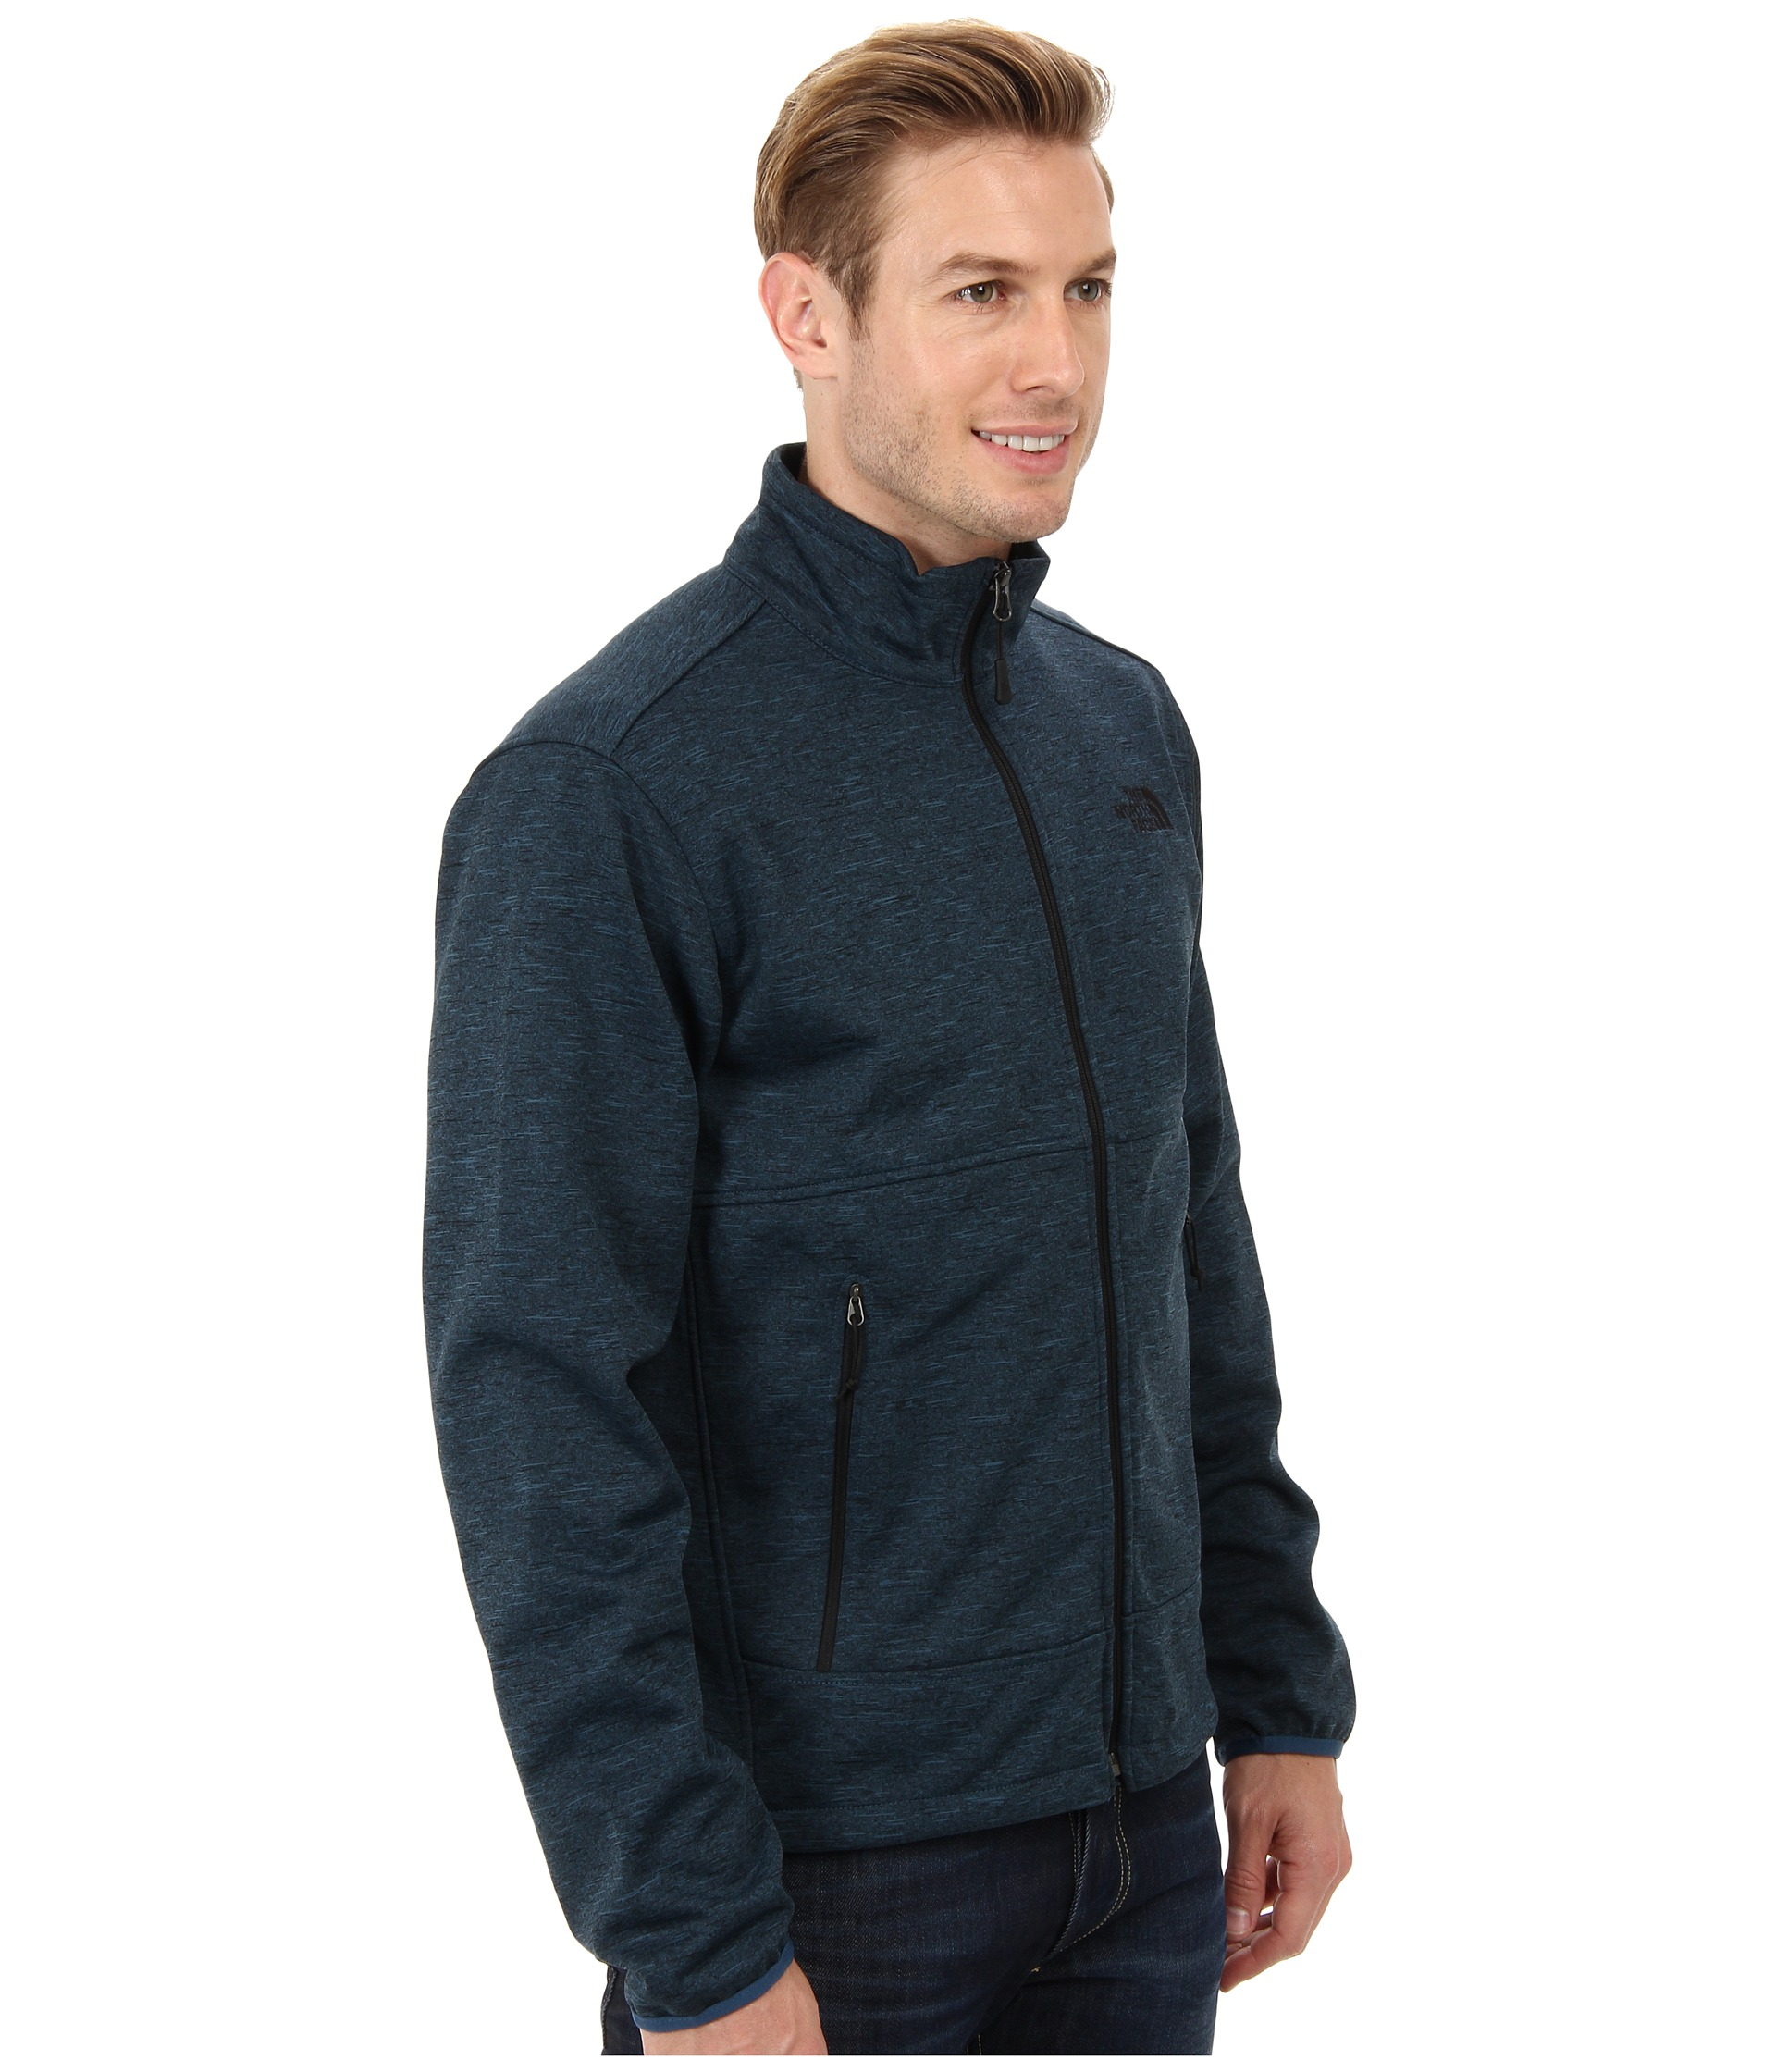 e372f942209f ... order lyst the north face canyonwall jacket in blue for men e5444 fb21a